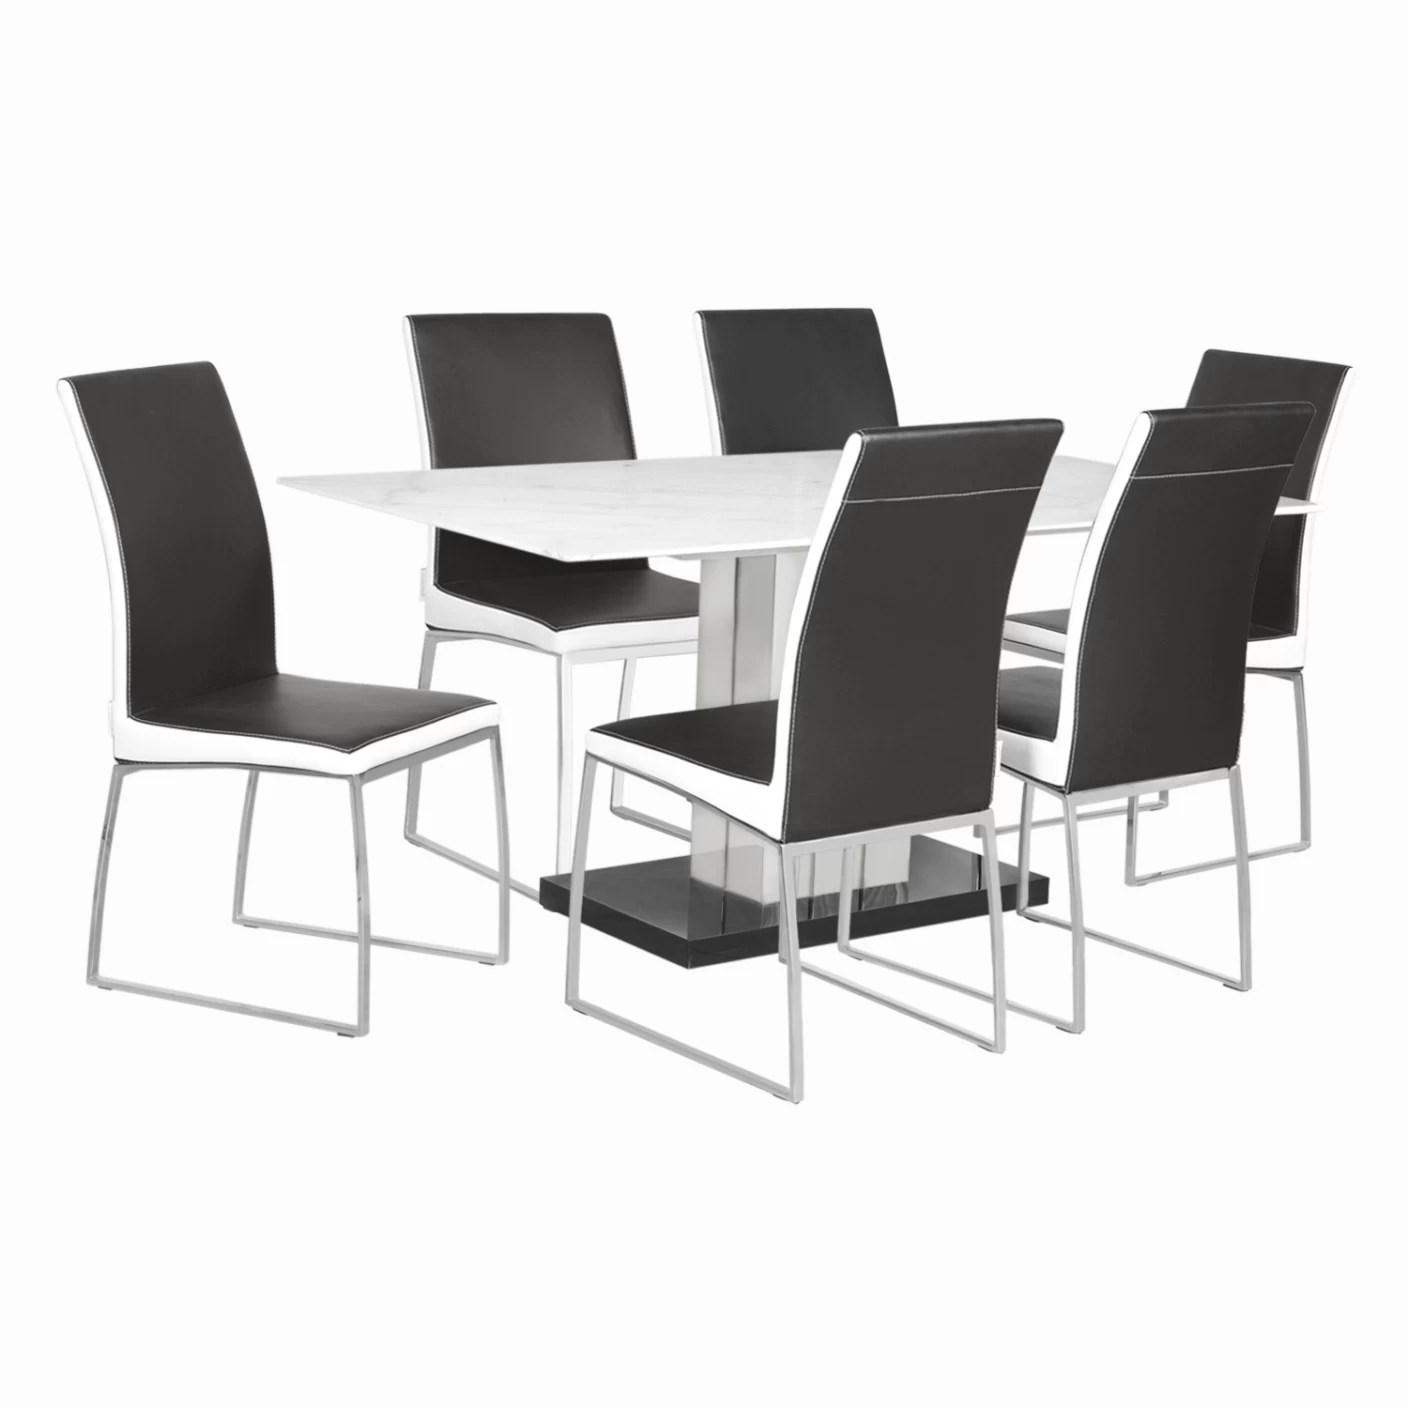 steel chair buyers in india price delhi godrej interio novel and marvel dining set stone 6 seater